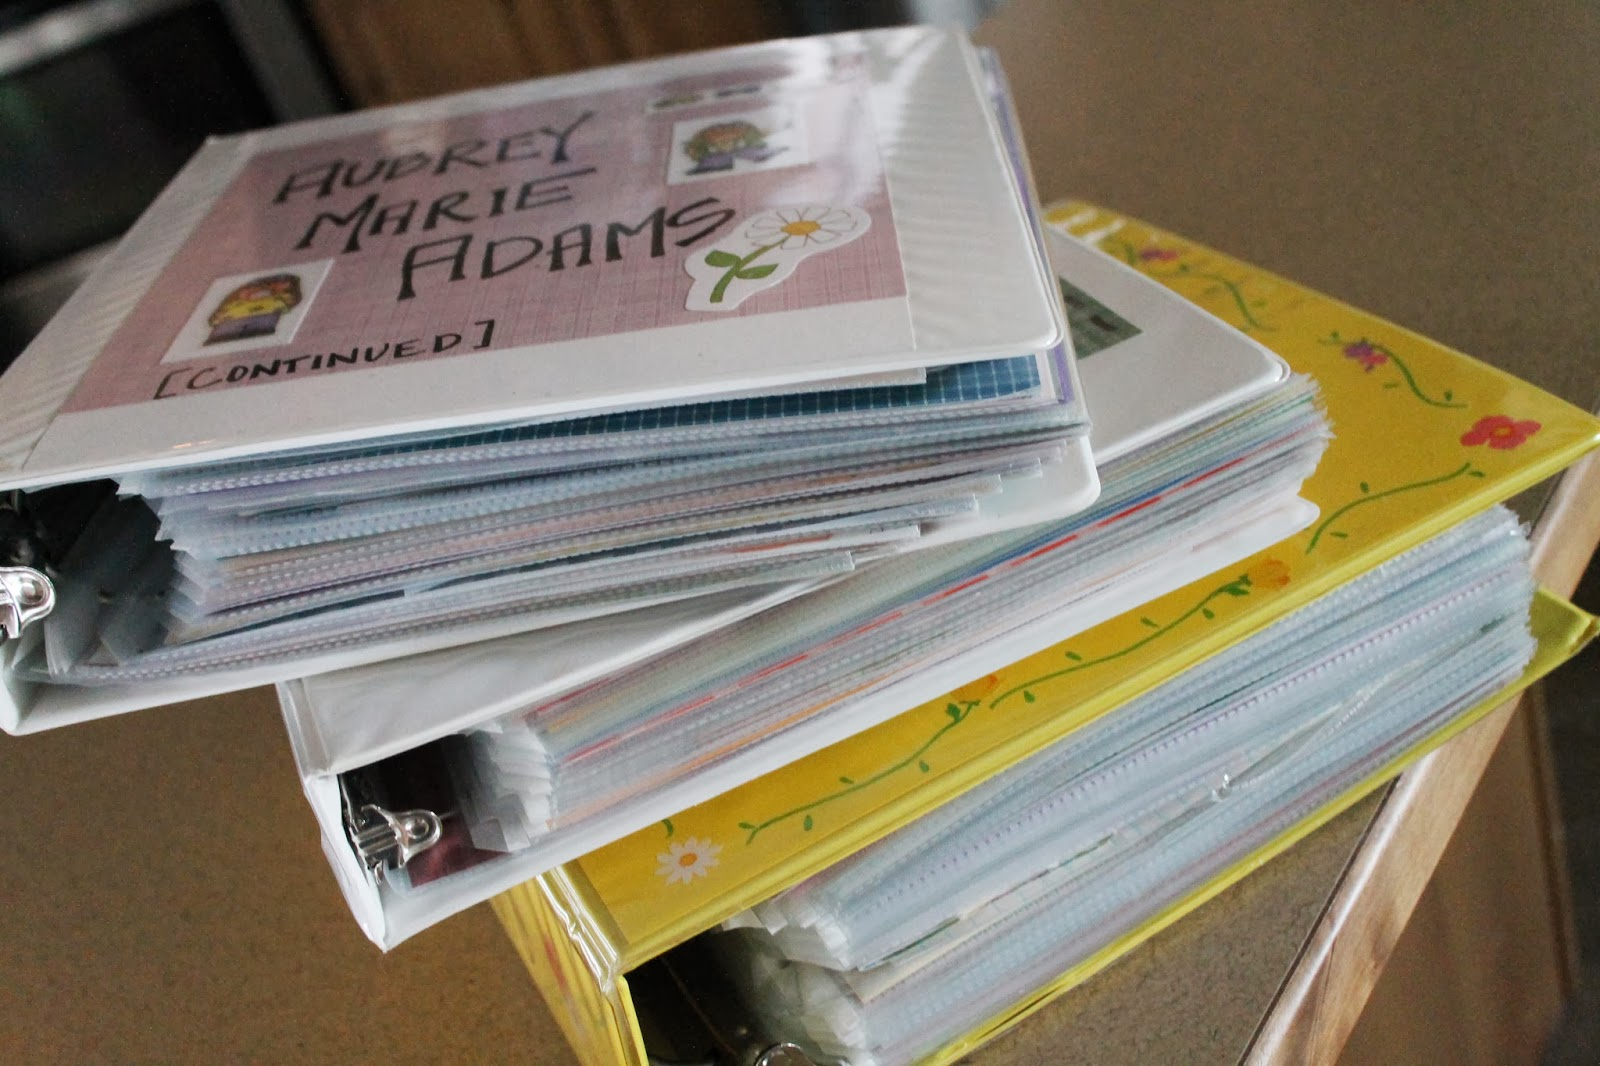 How to delete scrapbook photos google+ - Turning Your Old Scrapbook Into A Book